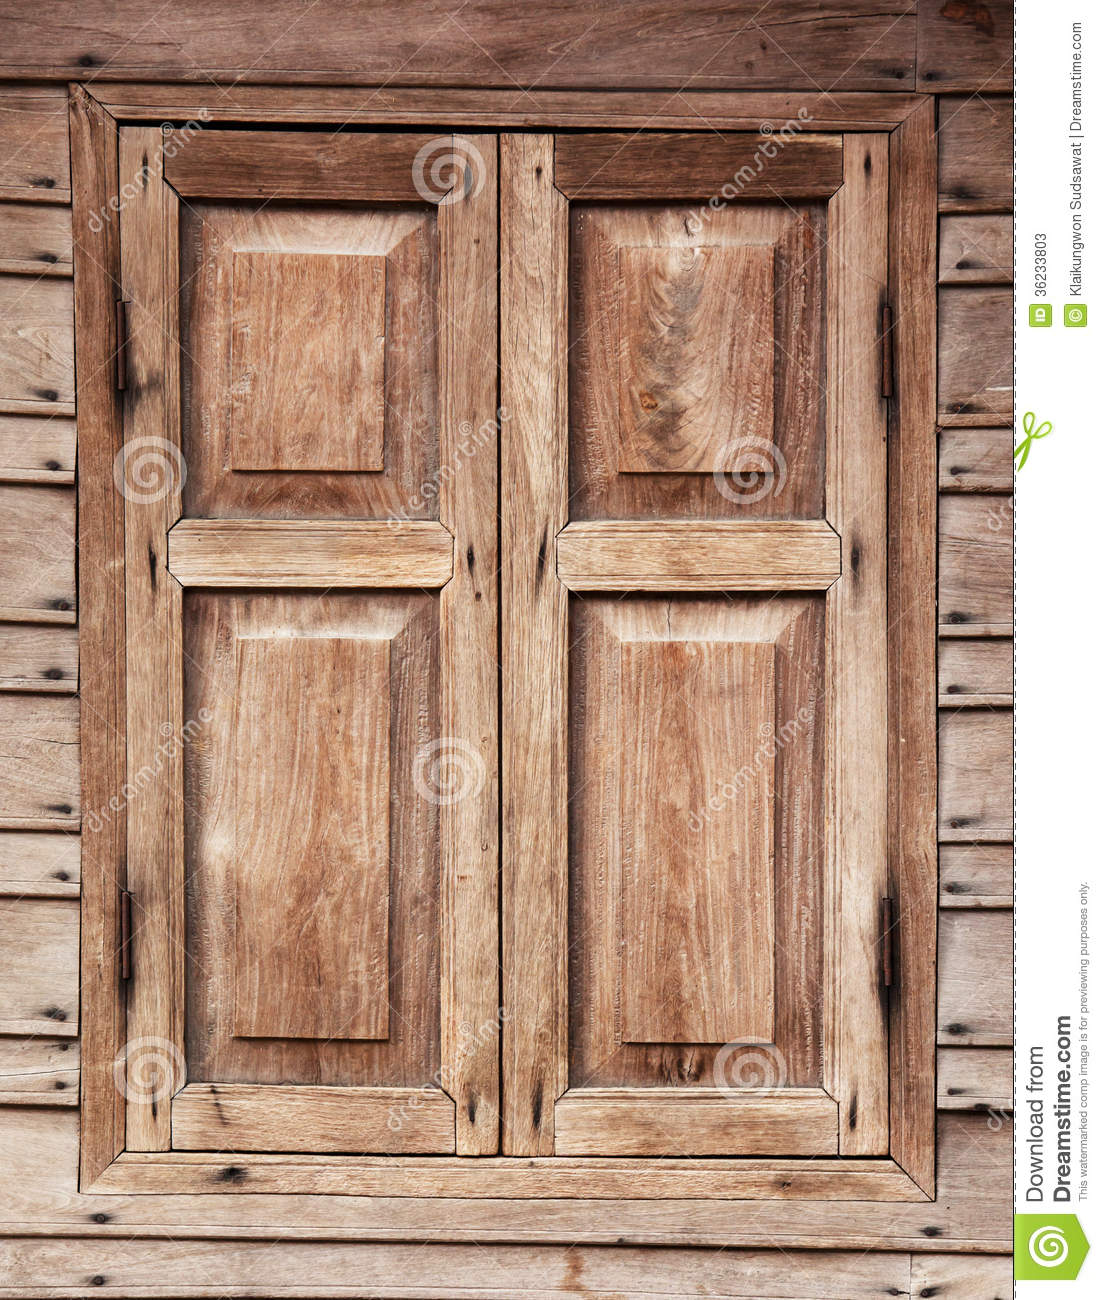 Wooden Window Of Asian House Background Stock Image ...